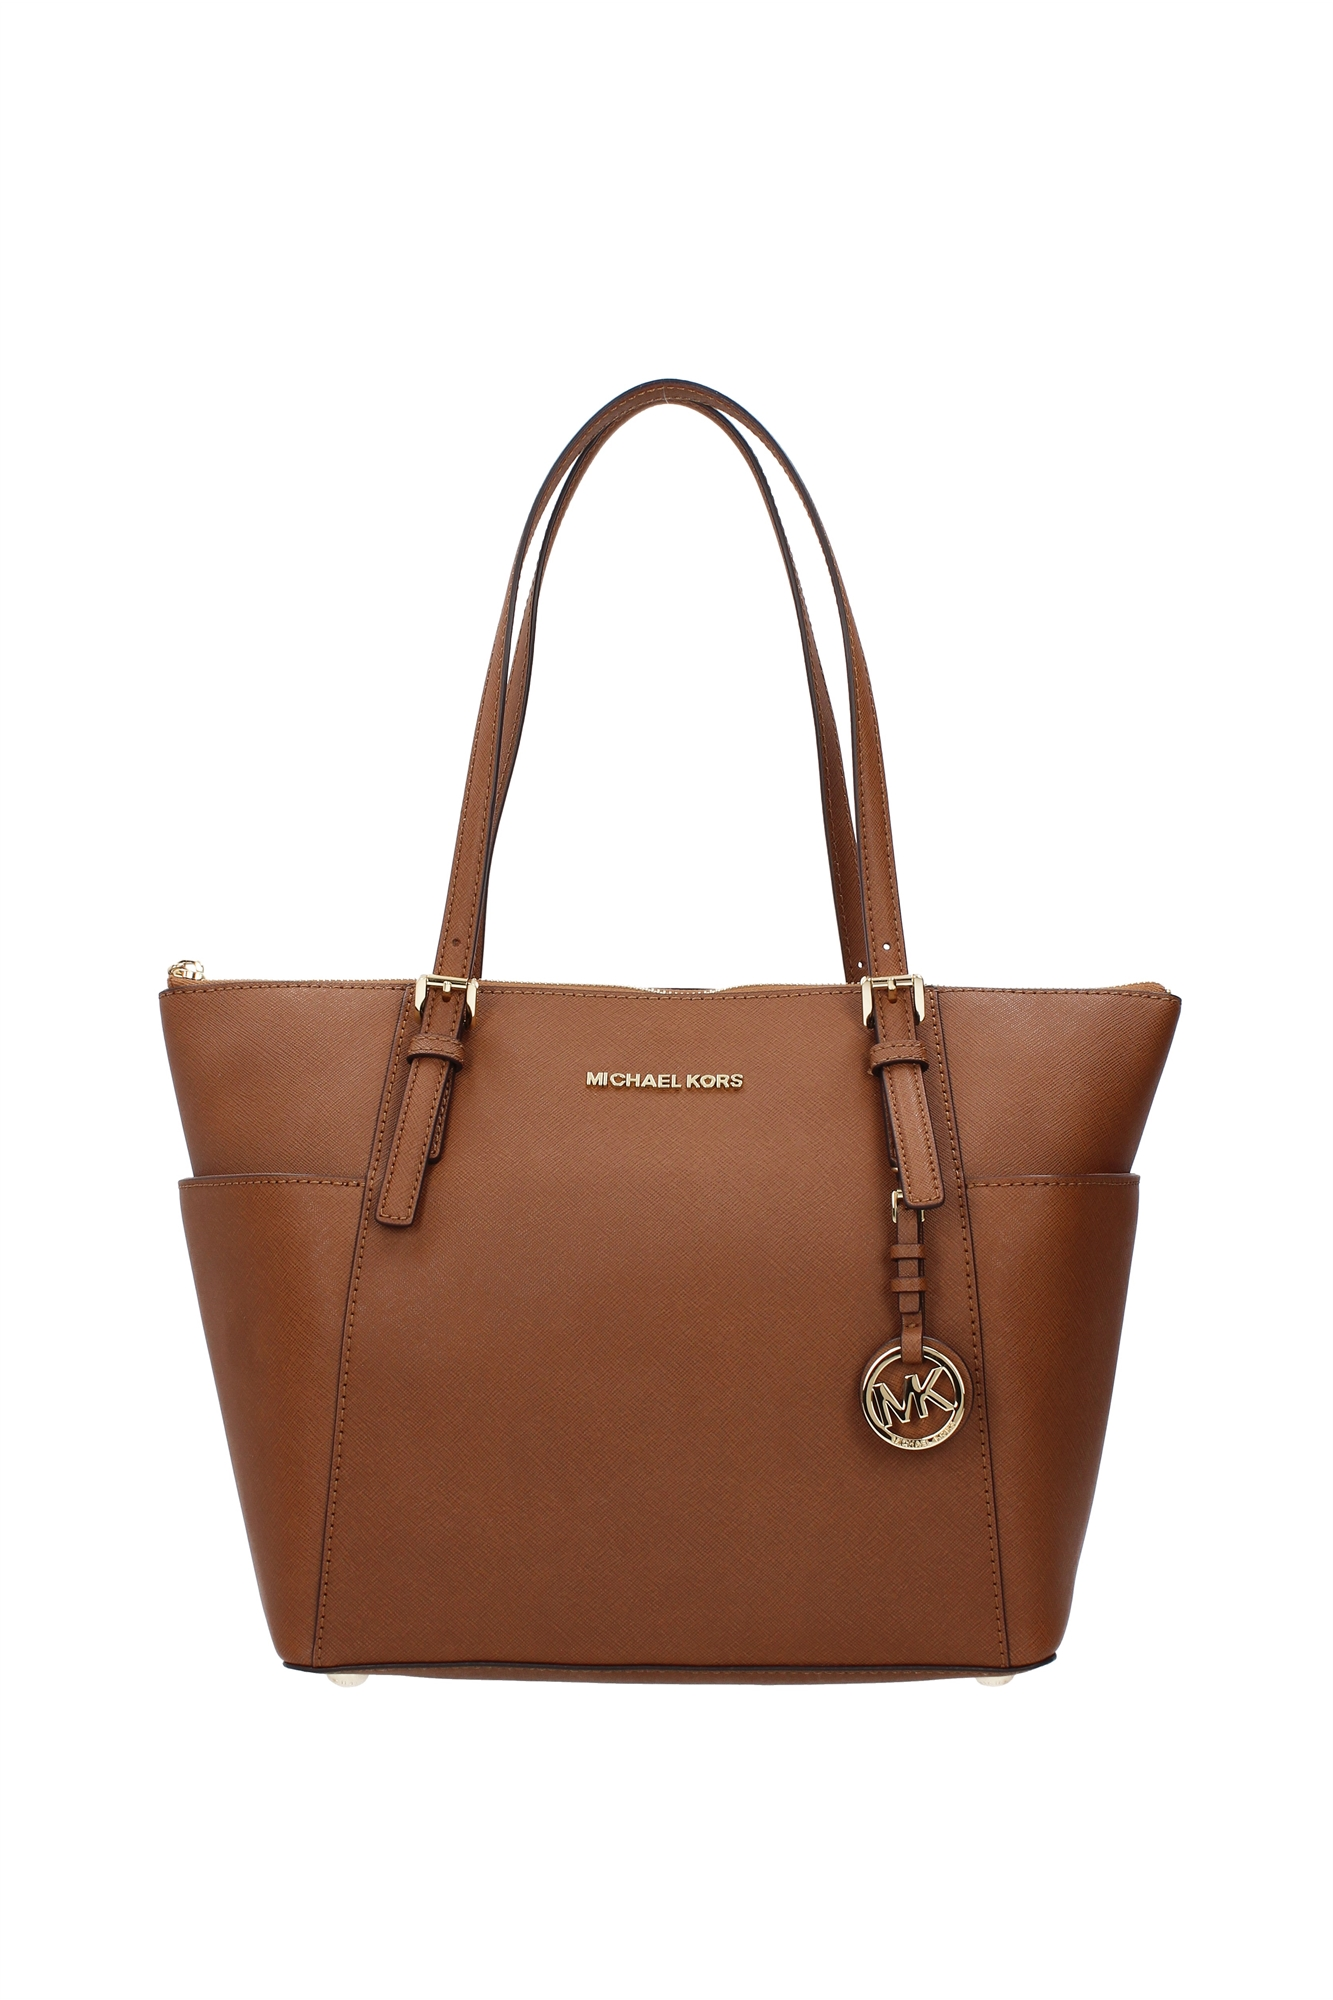 Borse shopping michael kors donna pelle marrone for Borse michael kors ebay